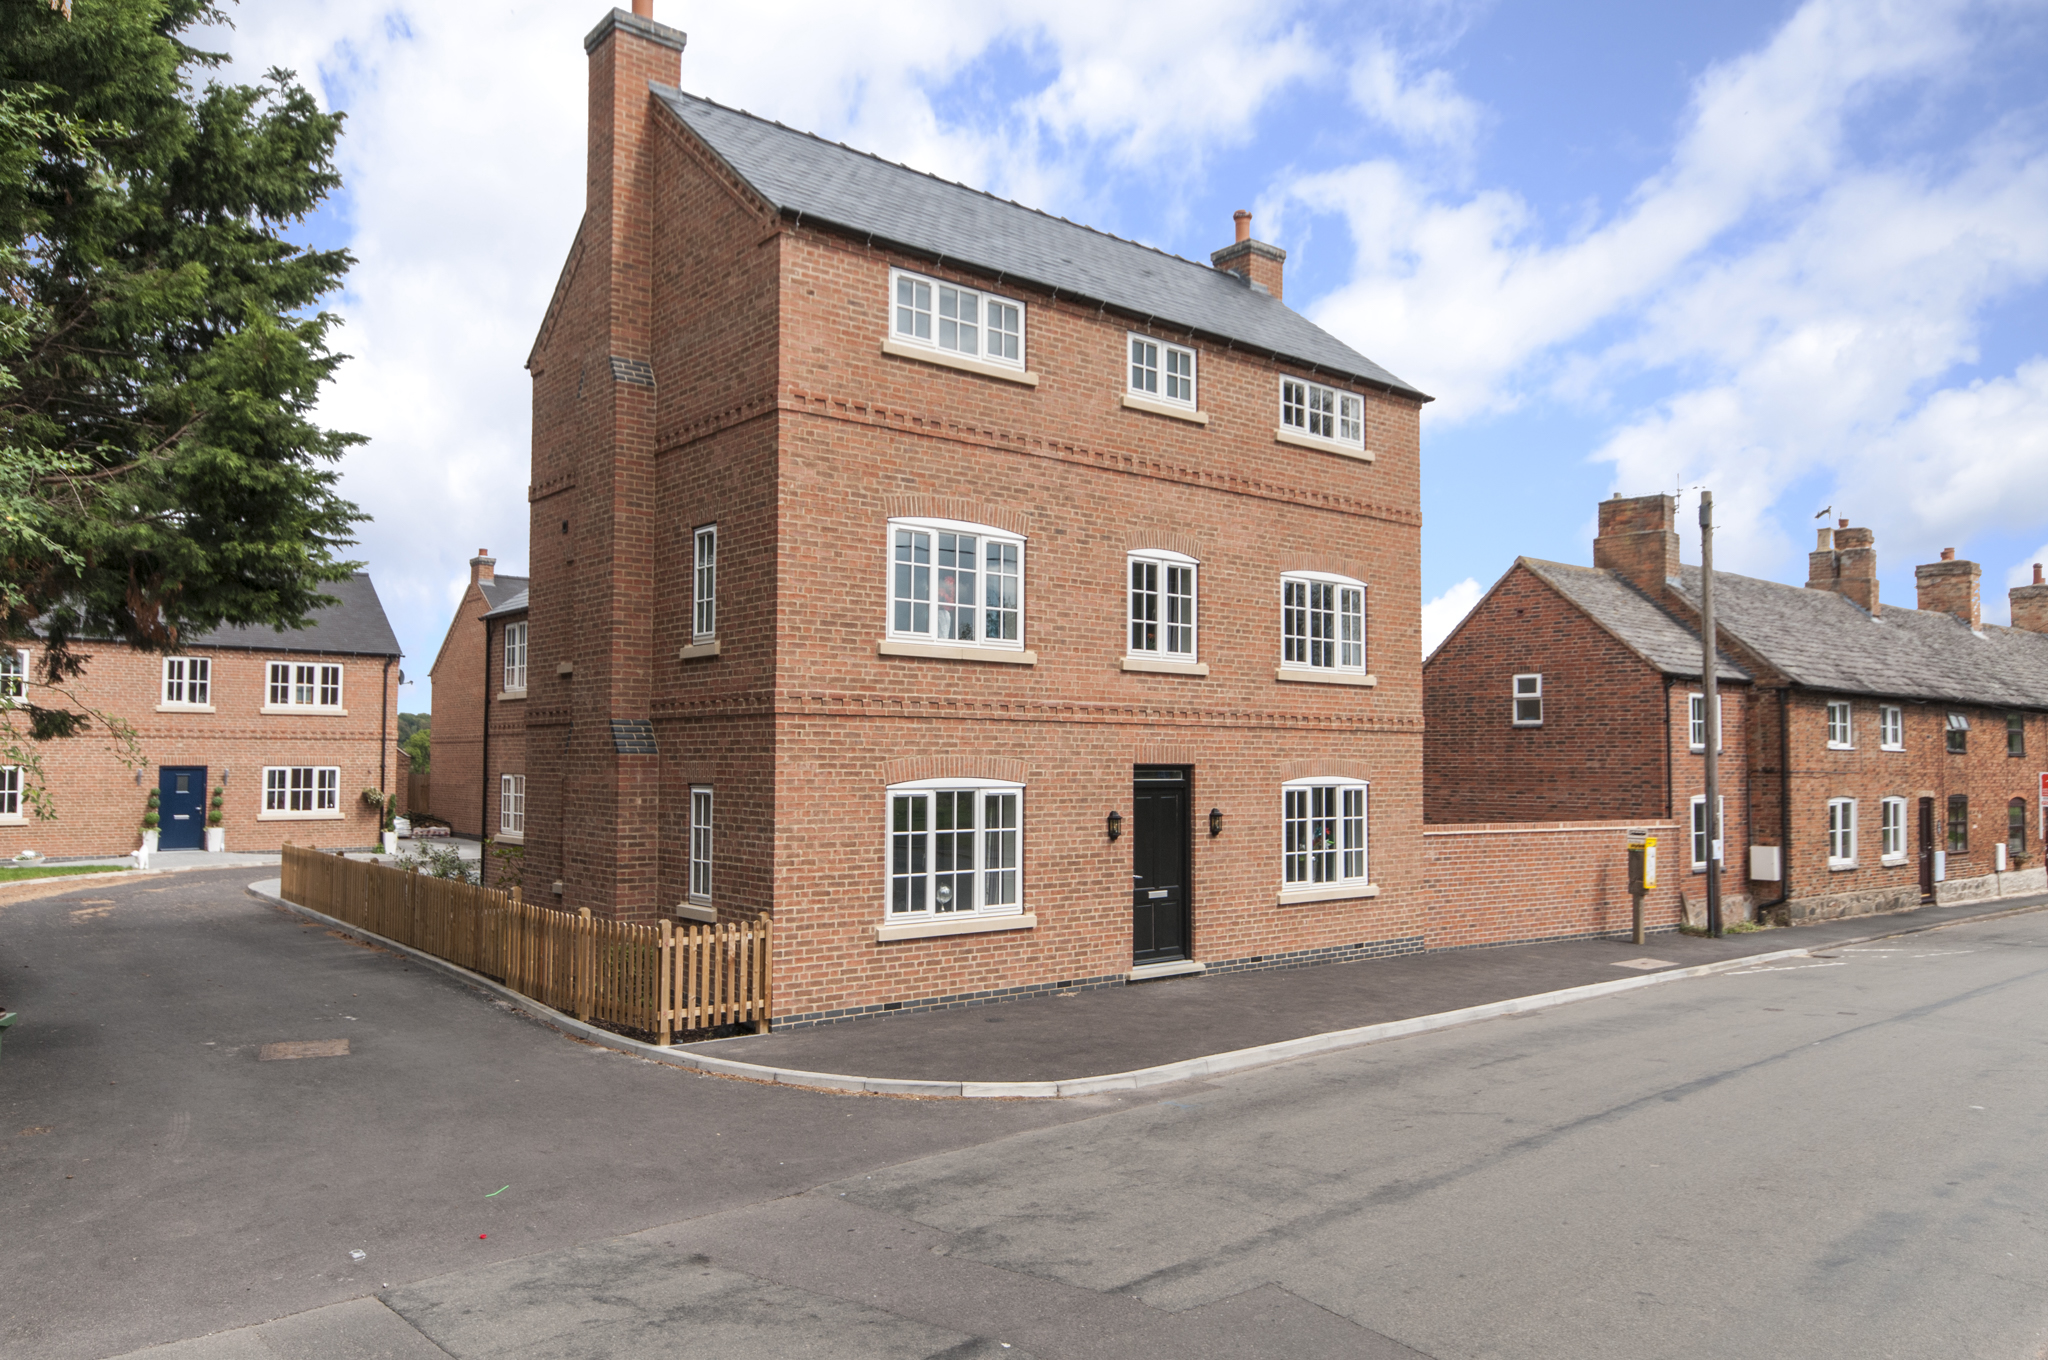 Main Street Long Whatton Loughborough Leicestershire Le12 5 Detached Full Brick Brand New Home On Wiring House To Garage Bedroom For Sale 48818208 Primelocation